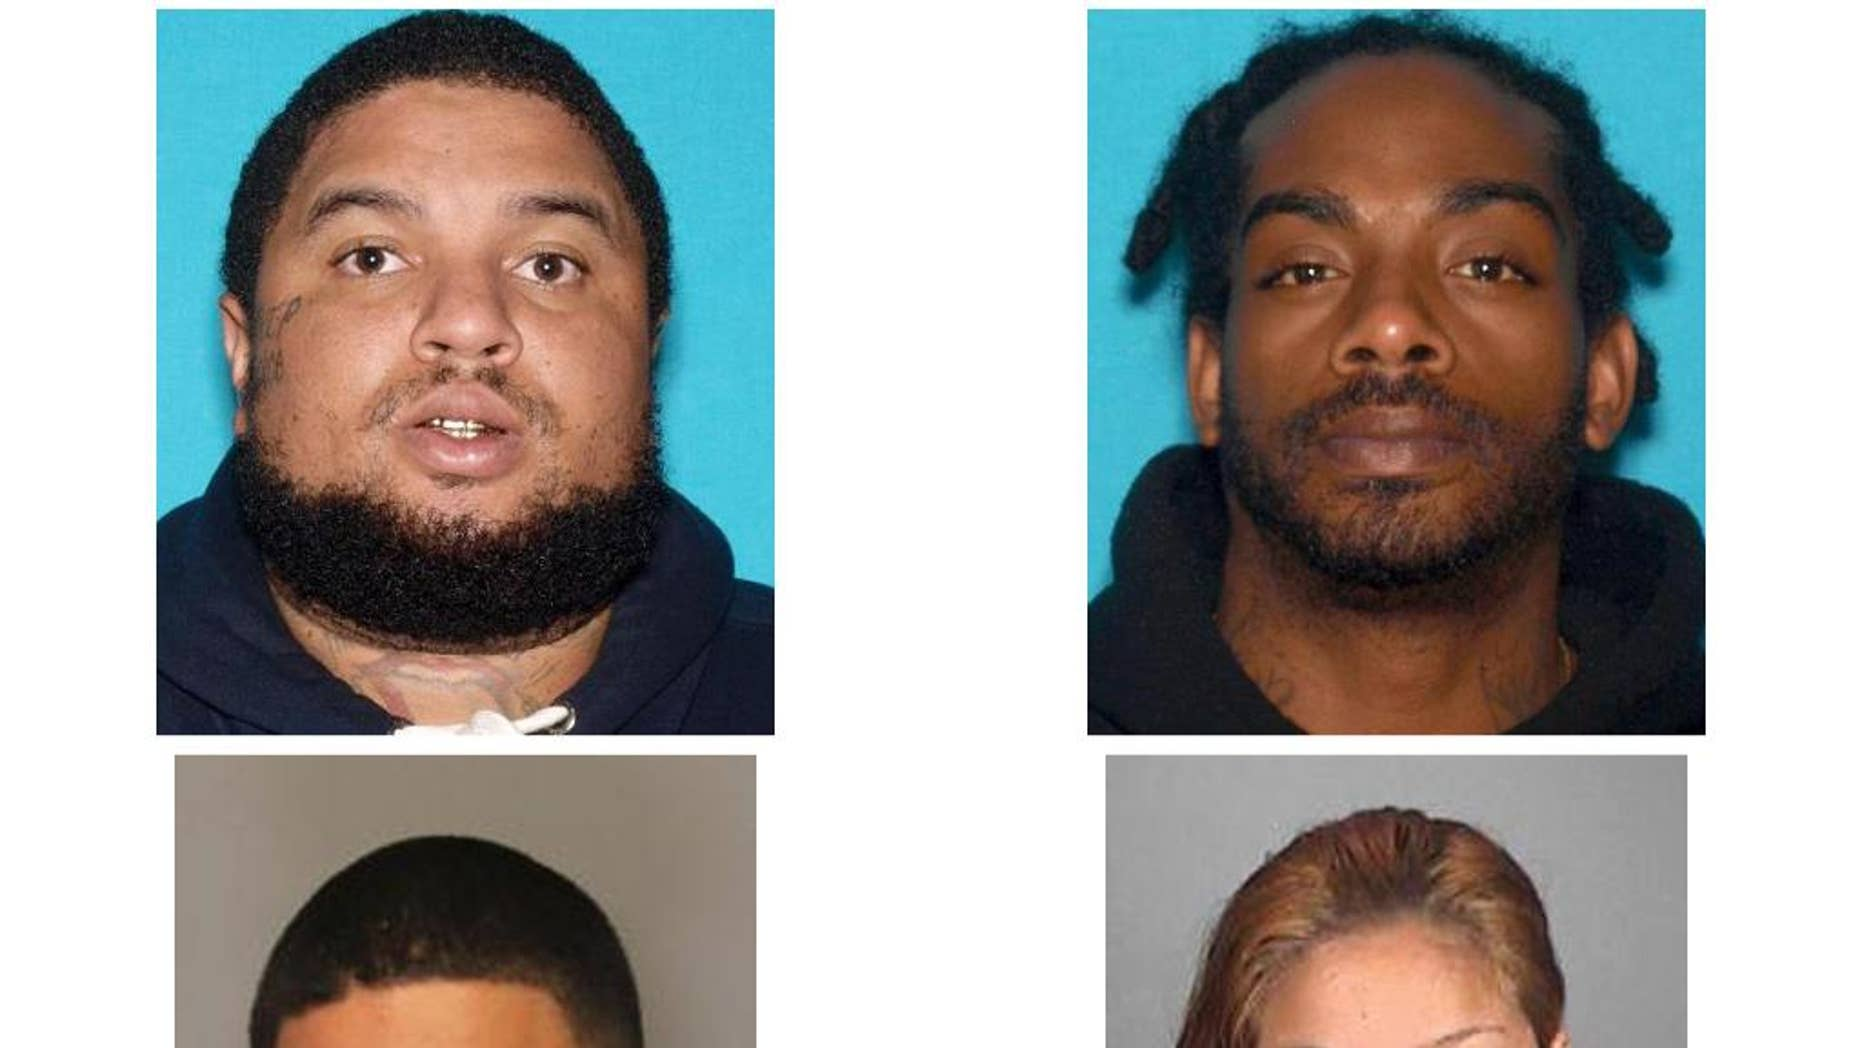 These undated mug photos released by the Vallejo Police Department shows suspects, top, left to right: Emmanuel Espinoza, Jalon Brown. Bottom, left to right: Larry Young, and Lovely Rauzol. On Friday July 1, 2016 the Vallejo Police Department received a report from John Babb, of San Francisco that his mother, Elvira Babb, of Vallejo was a victim of a kidnaping for ransom. Vallejo Police detectives developed sufficient information to obtain an arrest warrant for the primary suspect in this case. He has been identified as Emmanuel Espinoza of Stockton. Espinoza was located and arrested in the Sacramento area. Espinoza has not divulged the location of the victim. All four suspects were booked into the Solano County Jail on a charge of kidnapping for ransom. (Vallejo Police Department via AP)